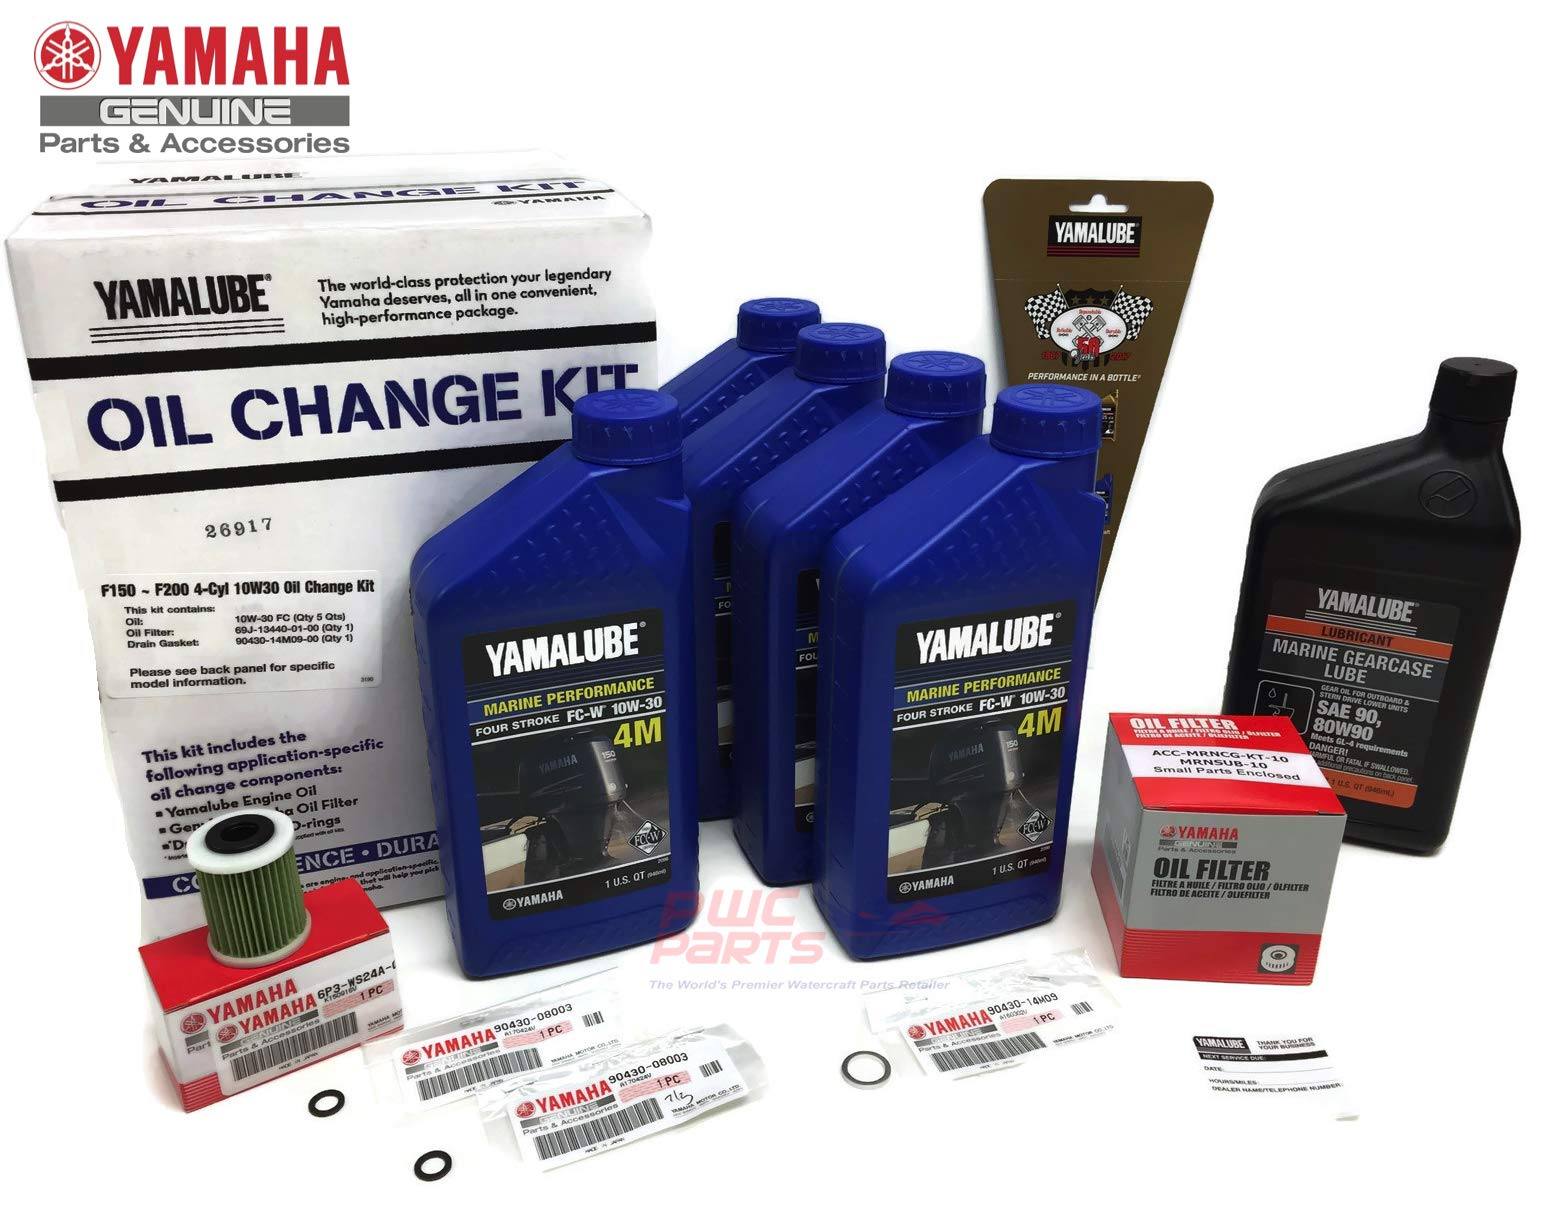 YAMAHA F150 Outboard Oil Change Kit 10W-30 4M Fuel Filter Gear Lube Lower Unit Gaskets Gearcase Maintenance Kit by PWC Parts Co (Image #1)